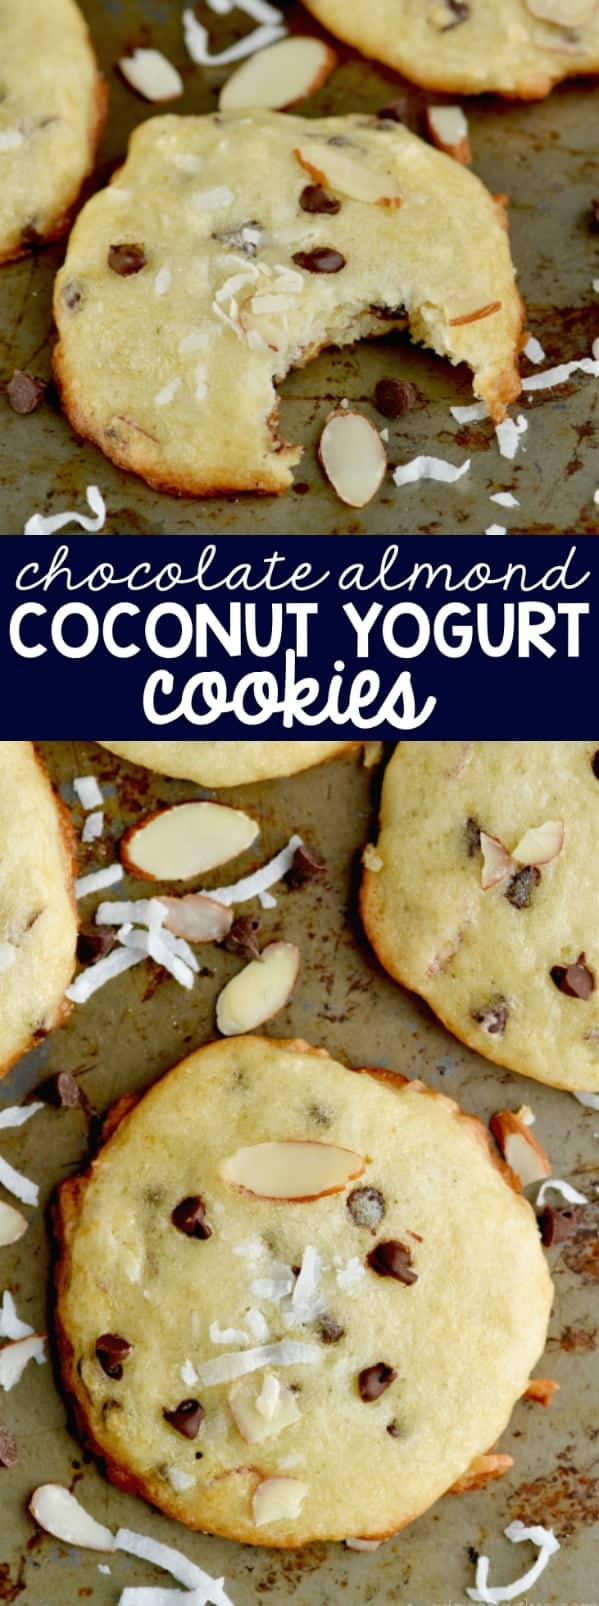 These Chocolate Almond Coconut Yogurt Cookies are chewy, delicious, and the perfect flavor!